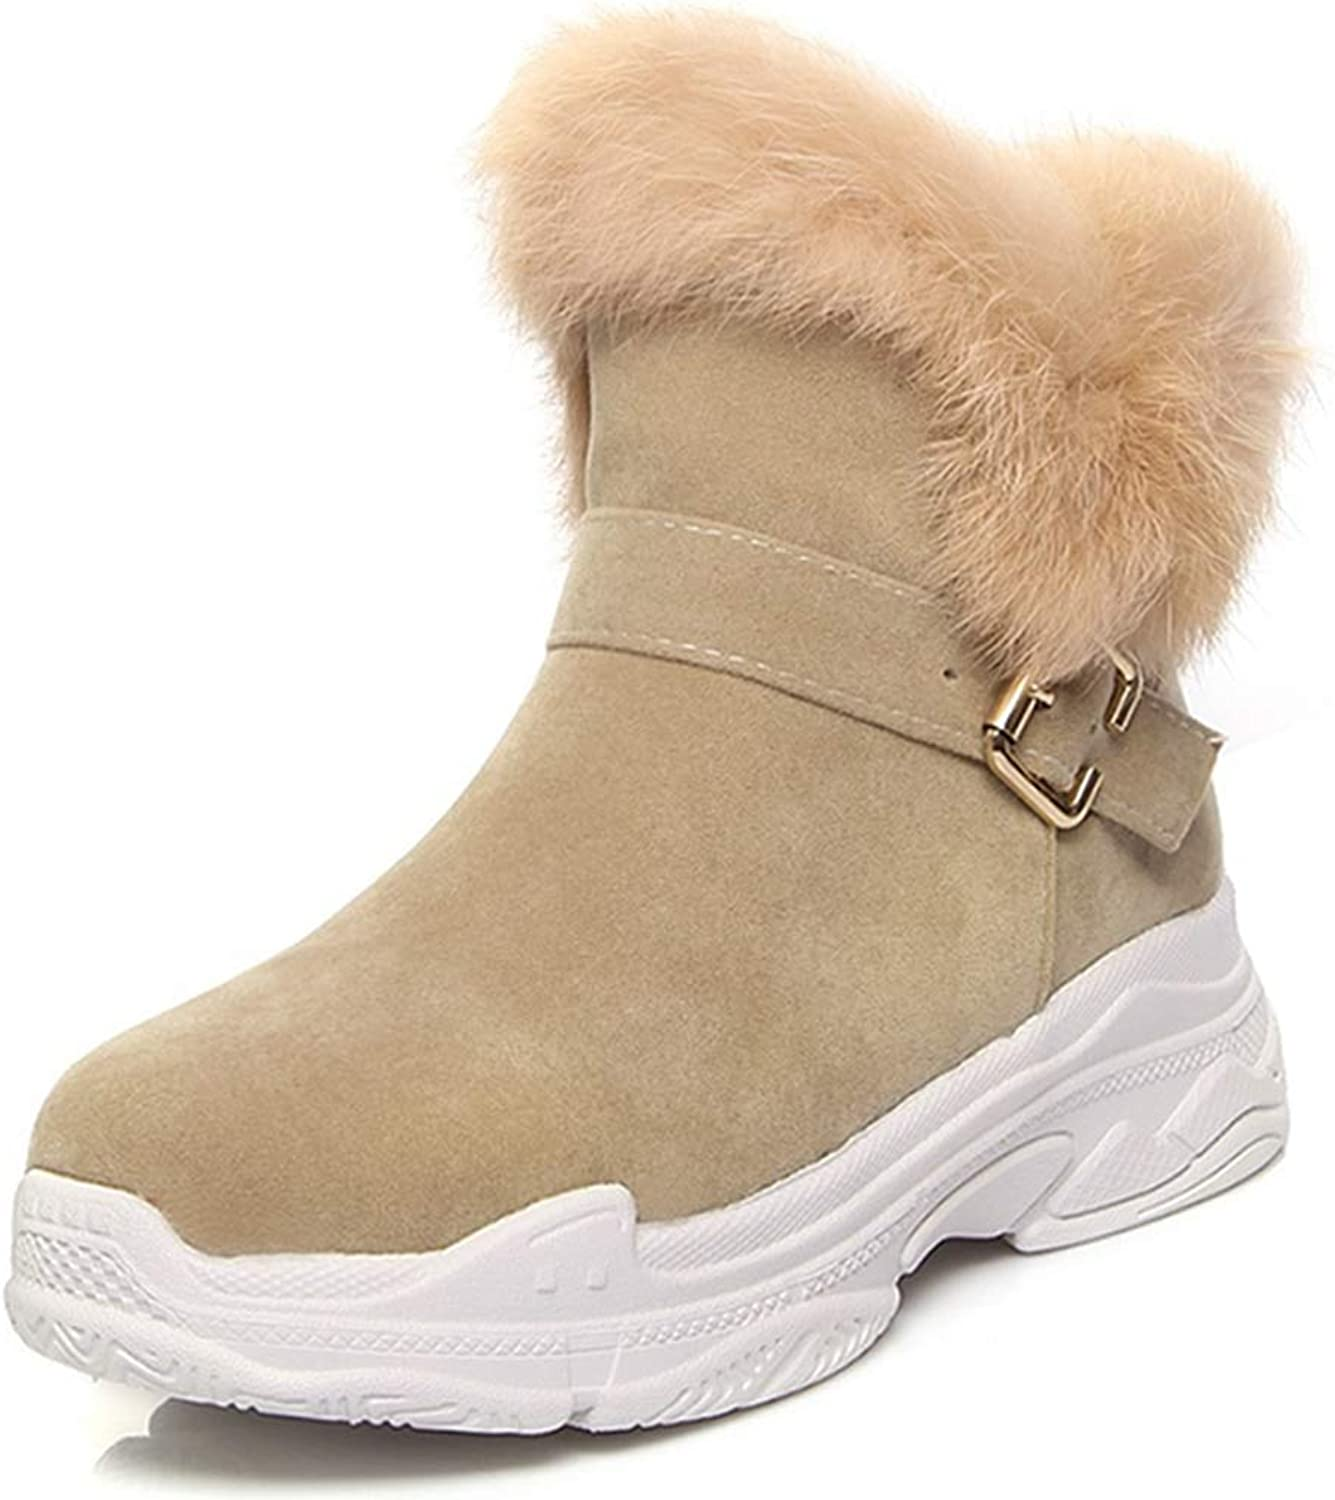 Fay Waters Women's Warm Ankle Boots Flock Mid Heel Wedges Round Toe Buckle Slip-on Winter Snow Booties